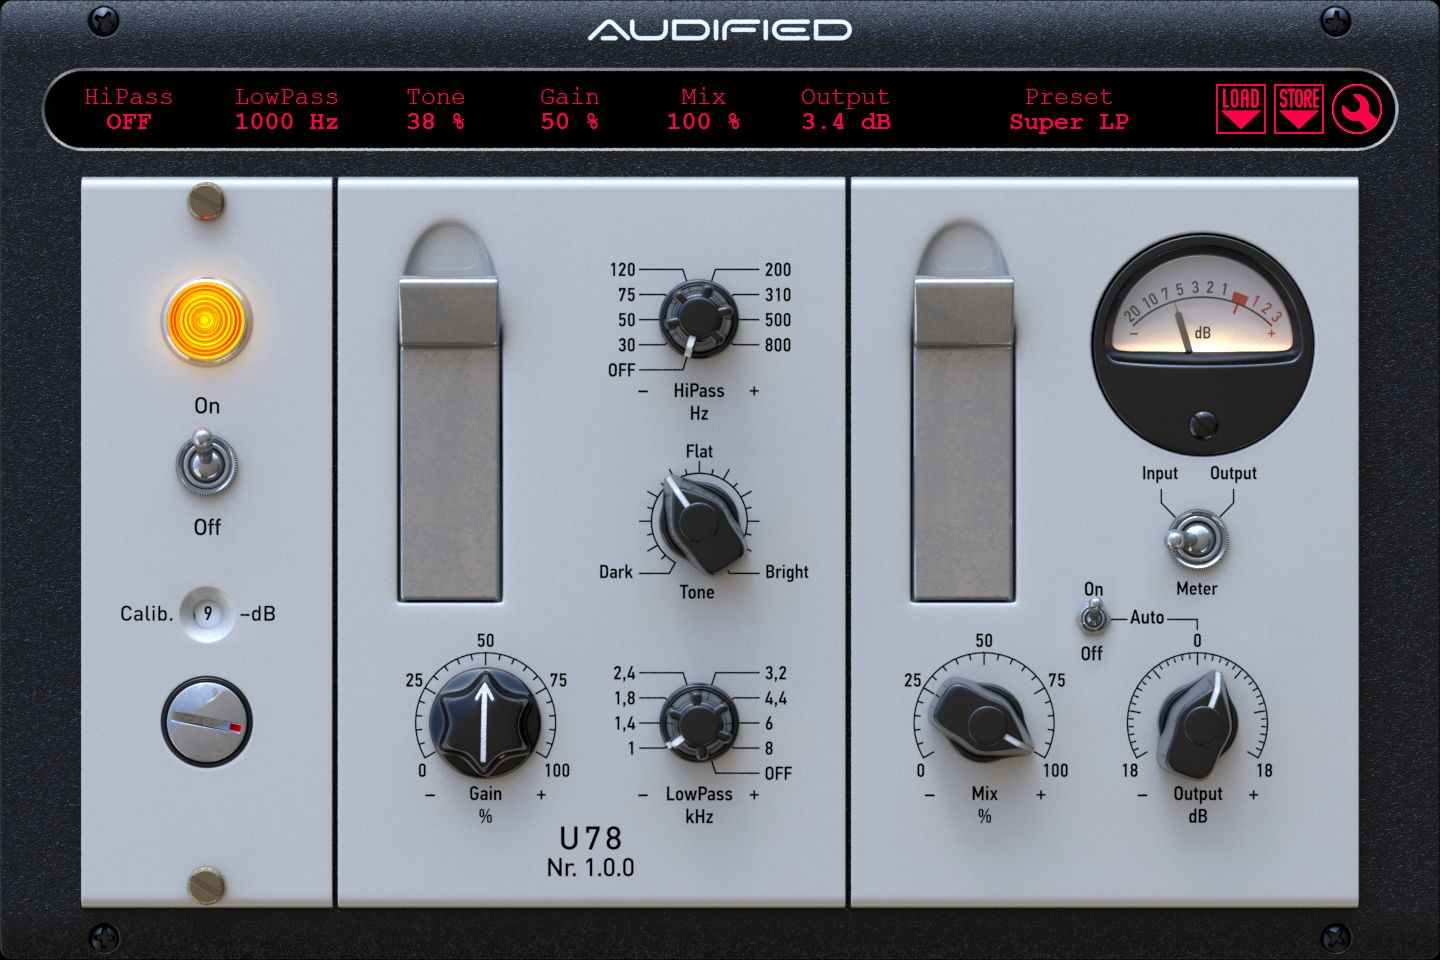 Audified U78 saturator plug-in is available now.